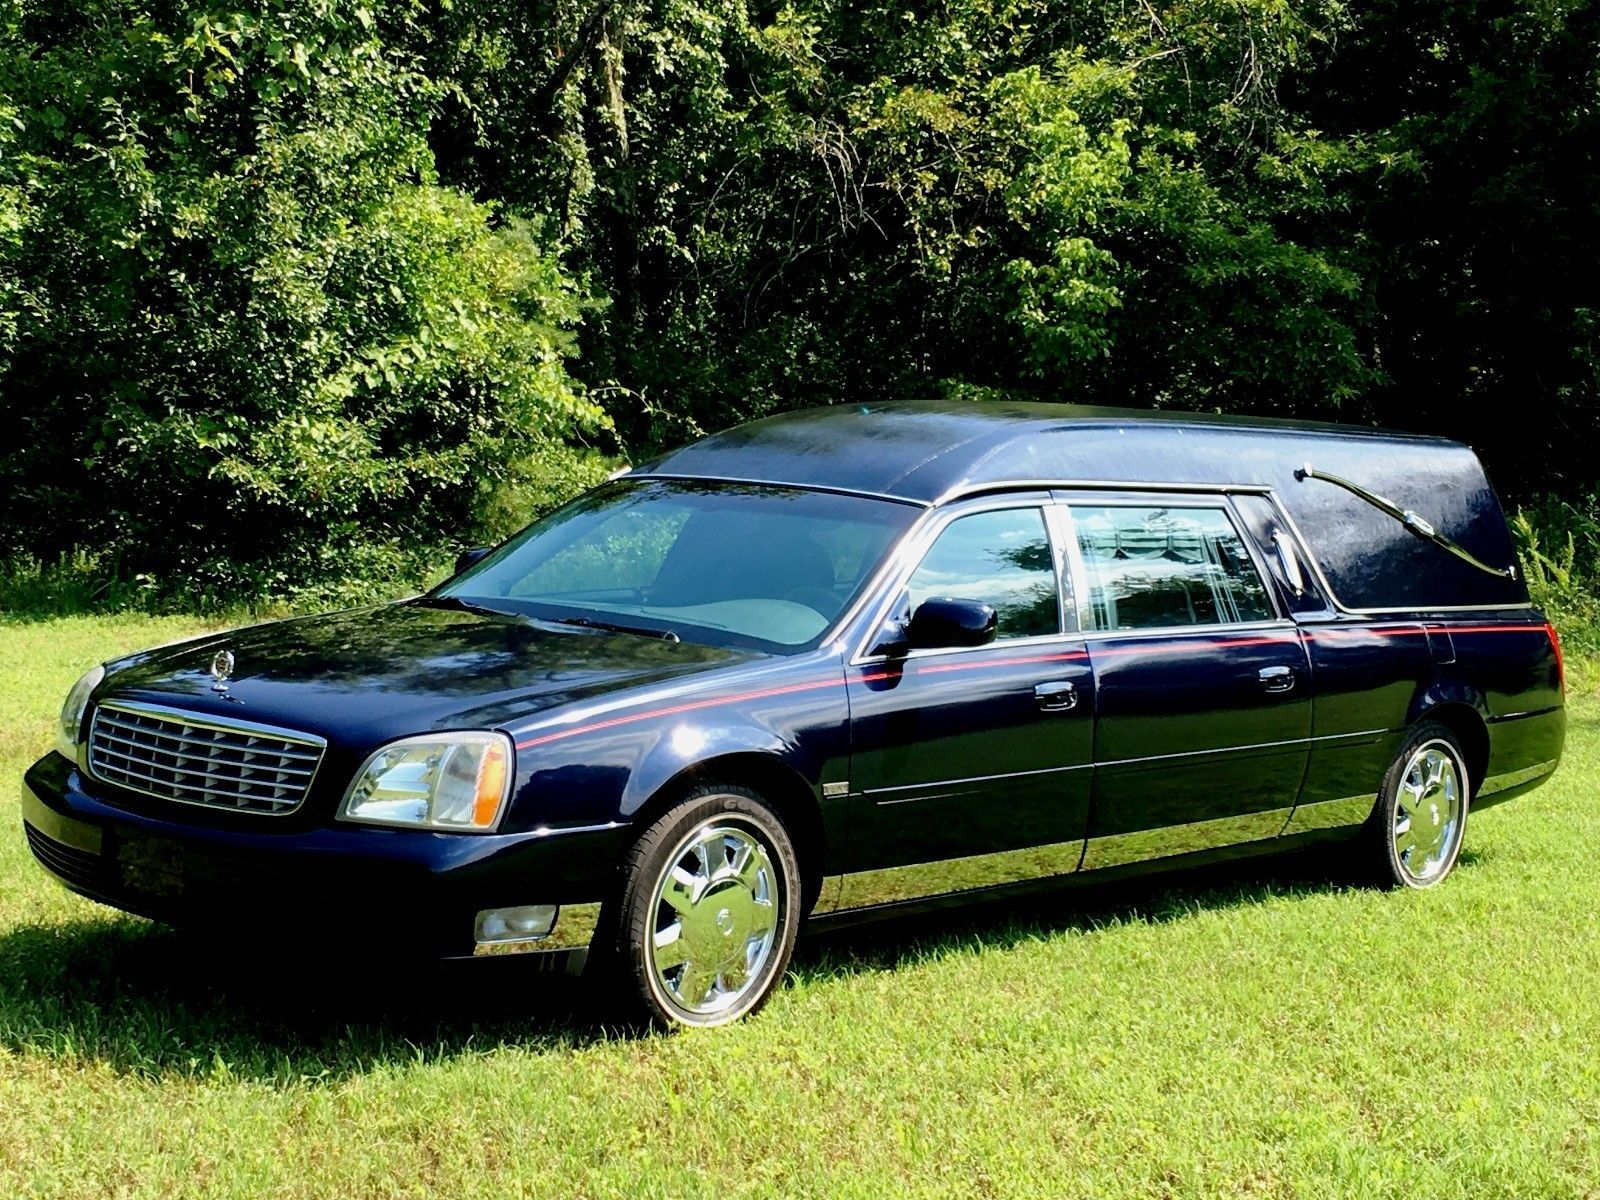 661d0fa8e9452608139acc9bc0c40ad3 Great Description About 1998 Cadillac Deville for Sale with Inspiring Gallery Cars Review